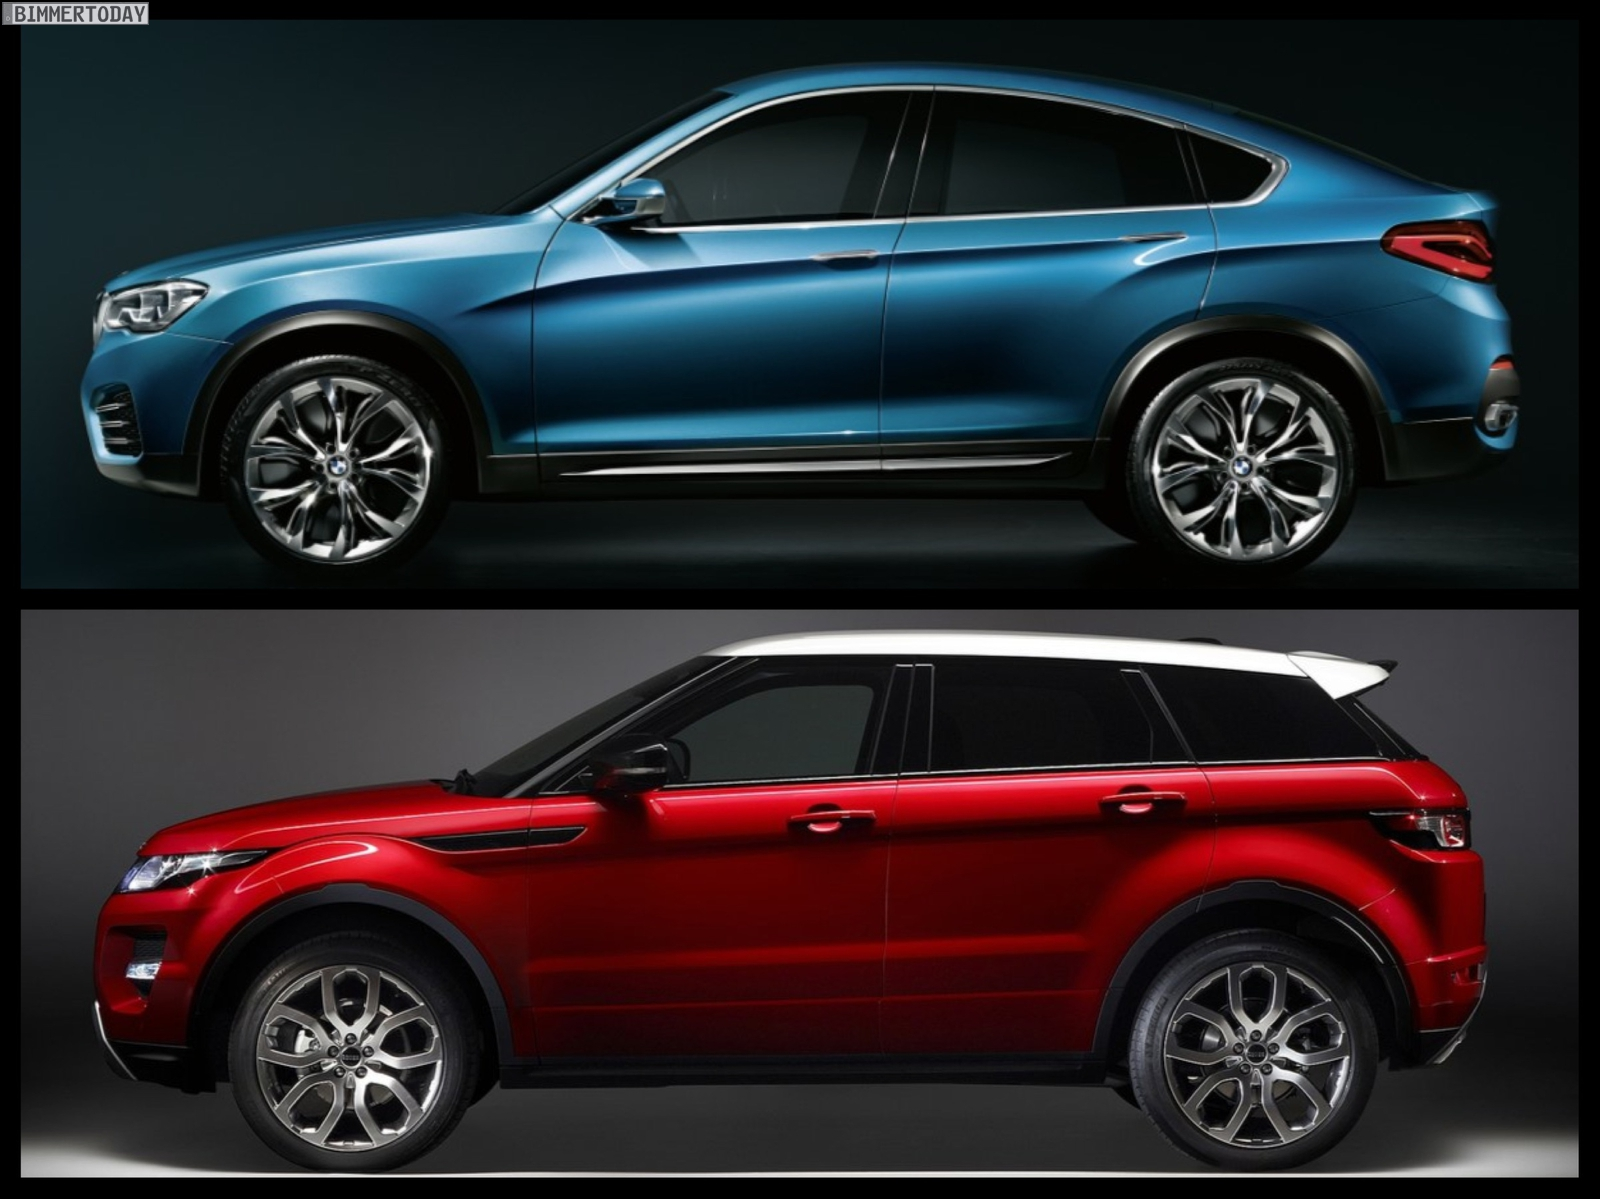 Bmw X4 Vs Range Rover Evoque Photo Comparison